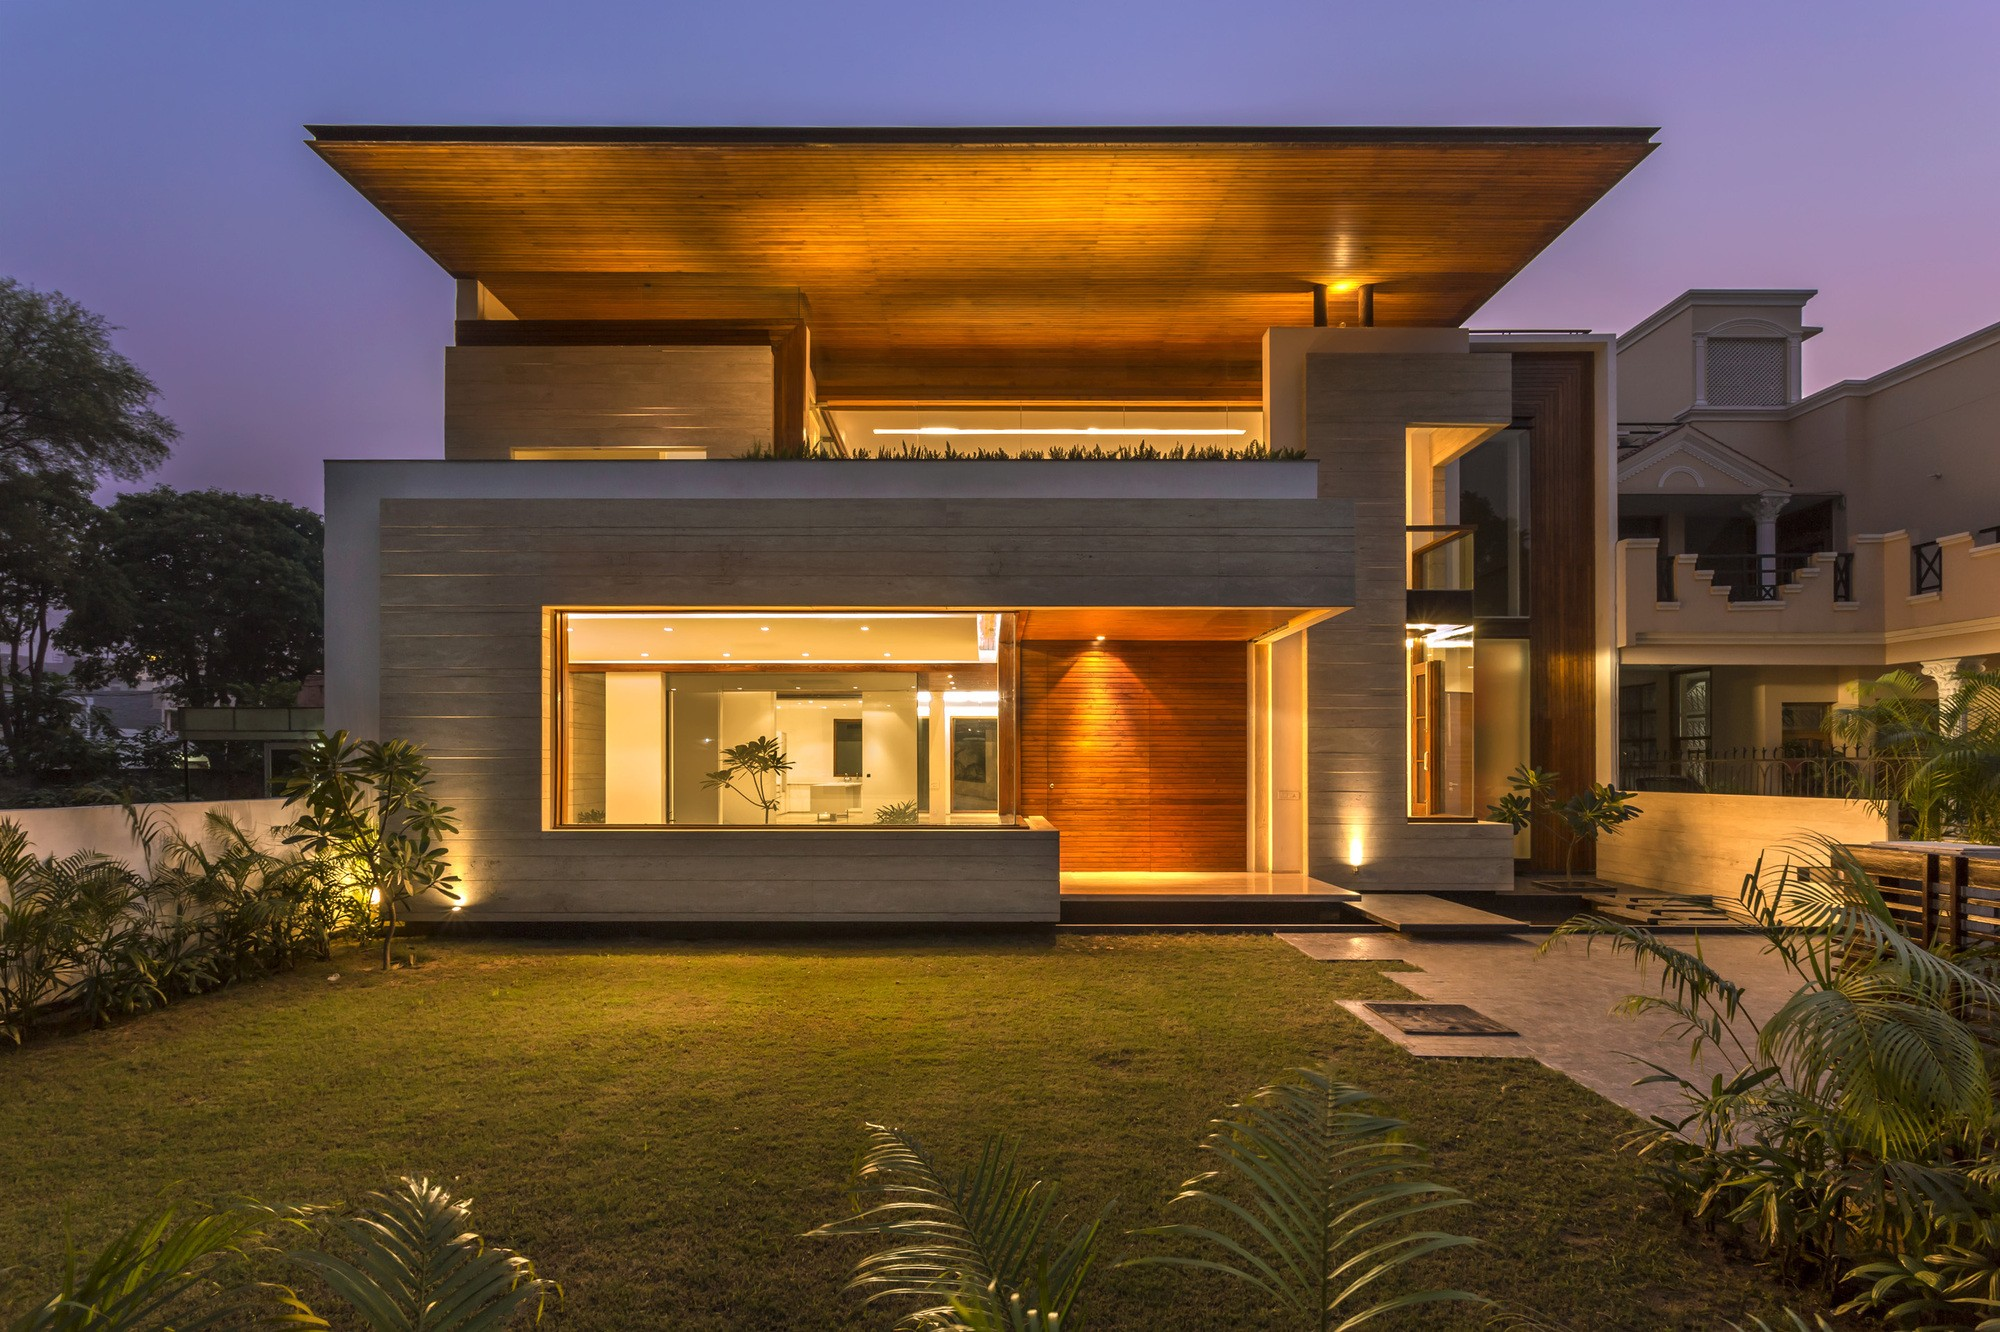 Superb house in mohali punjab india for Images of front view of beautiful modern houses